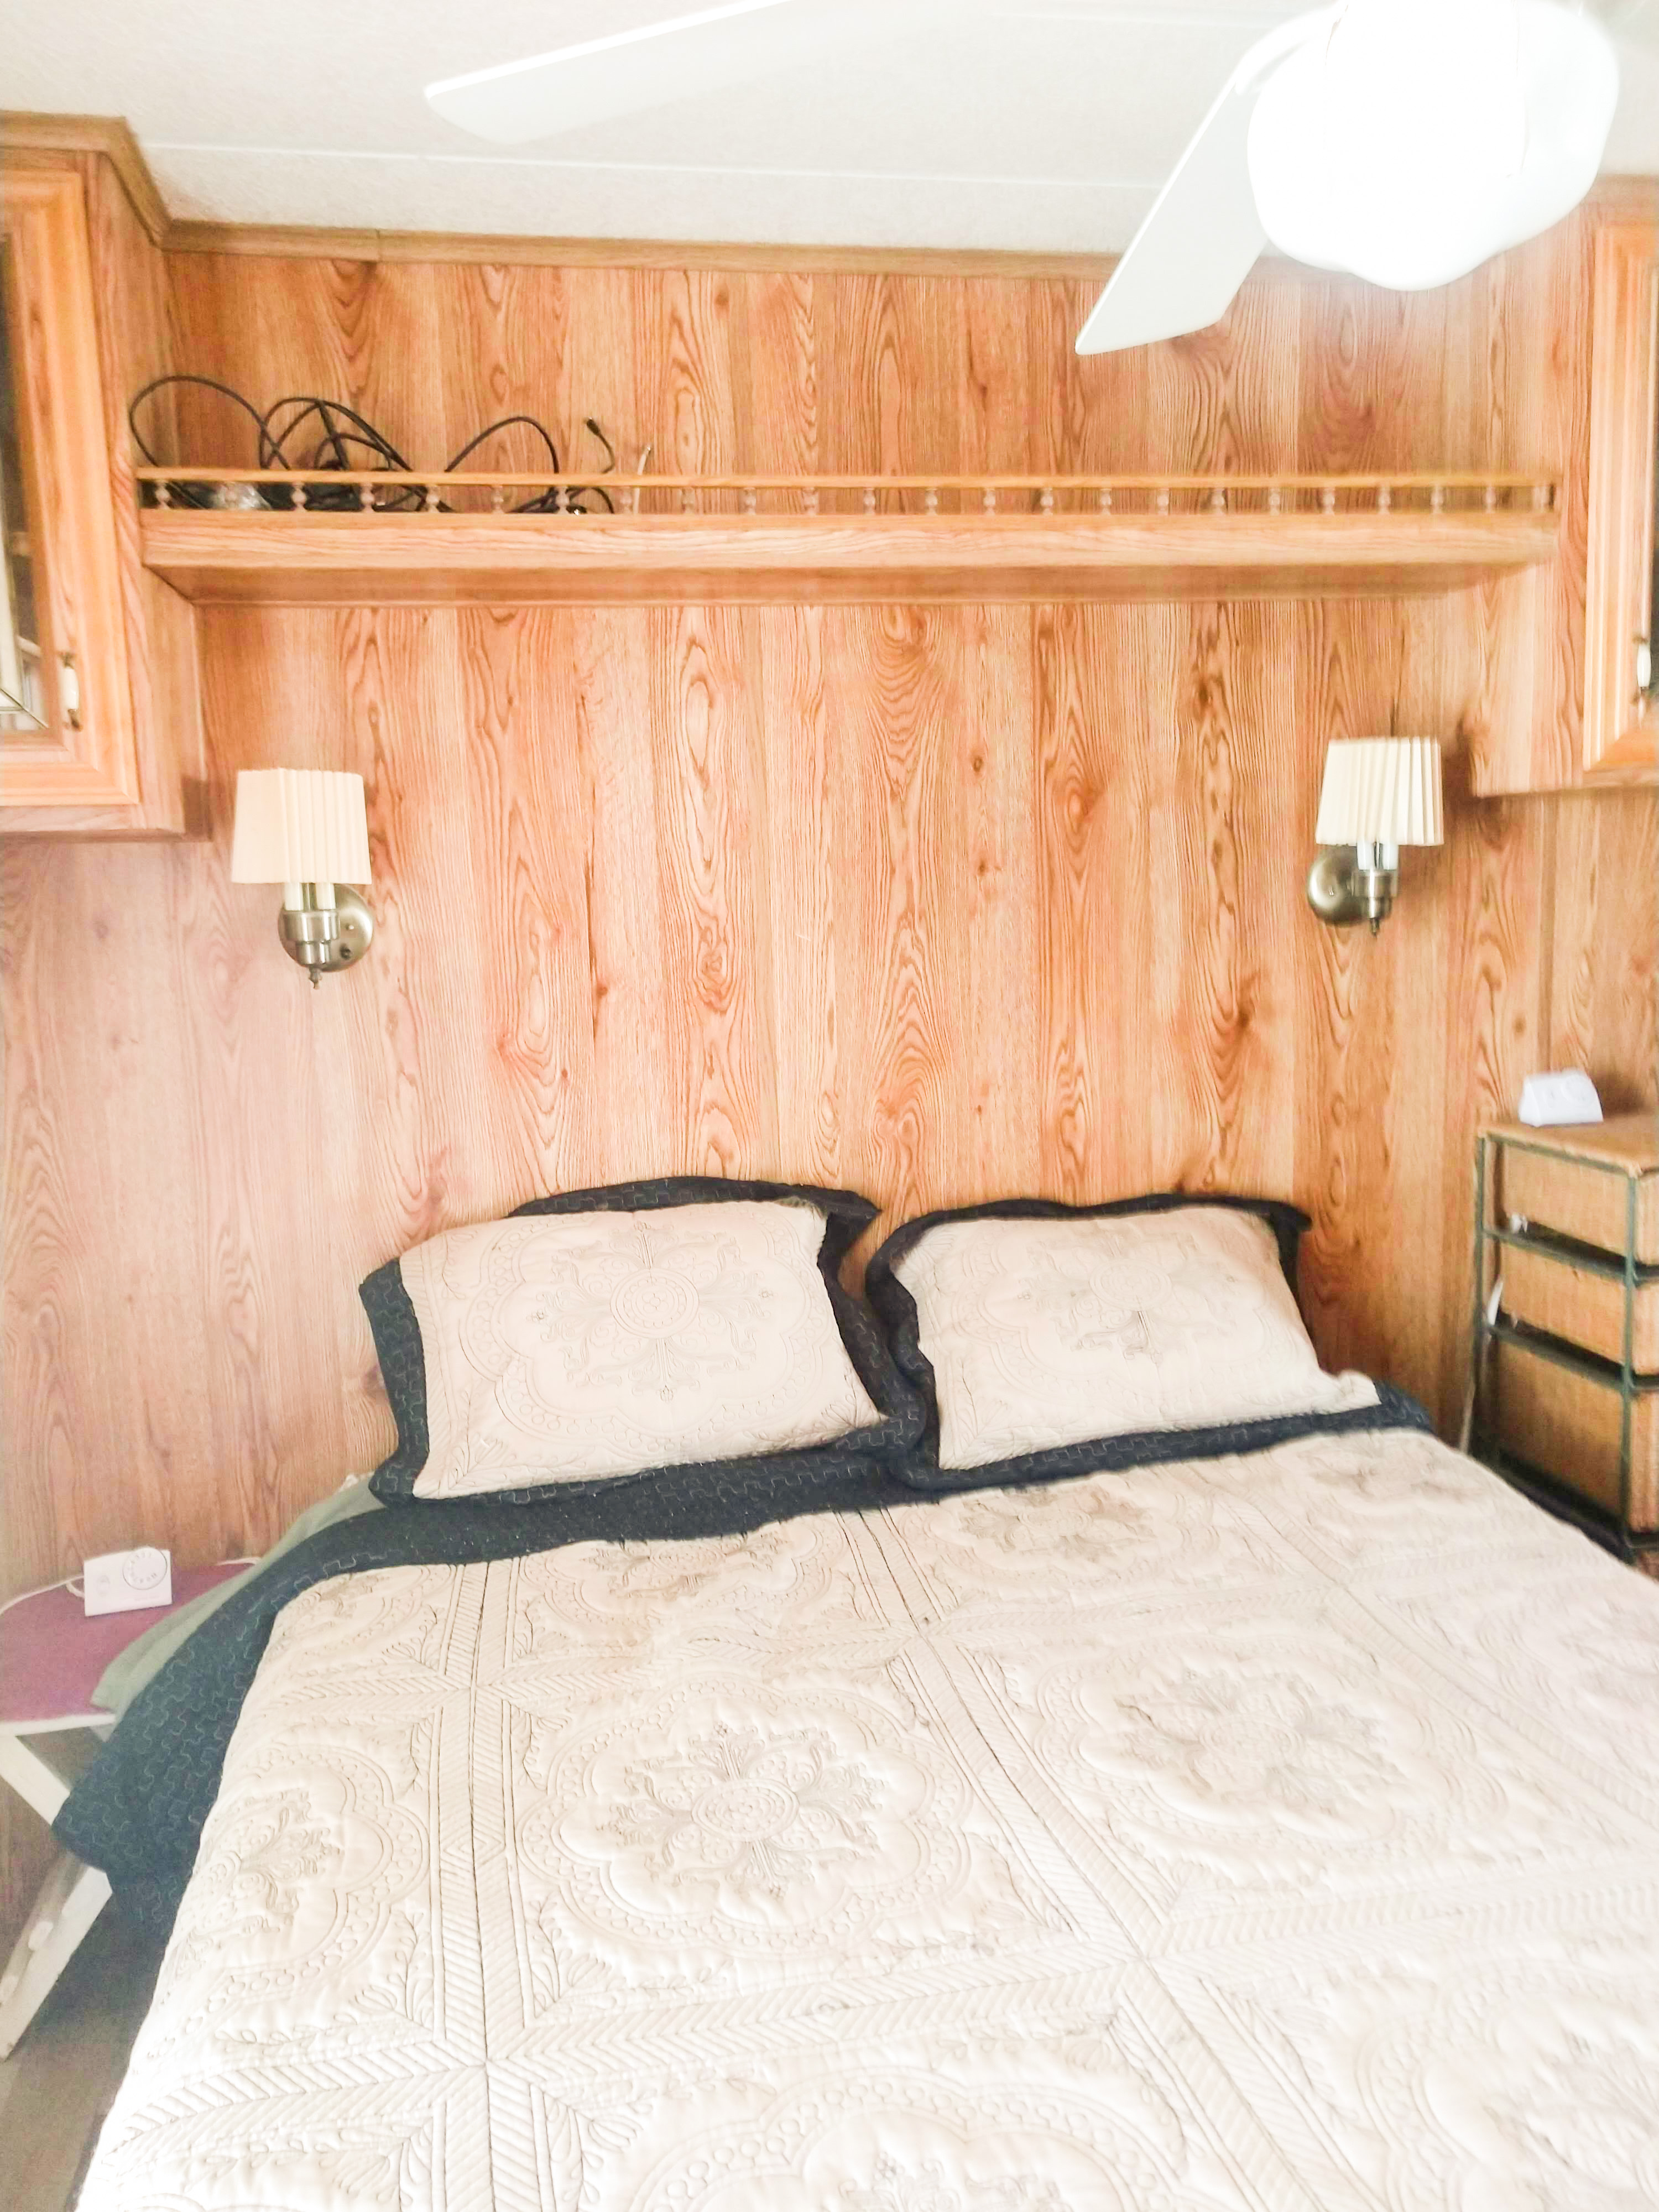 Fully furnished facilities for convenience at Garden Oasis RV park in Yuma